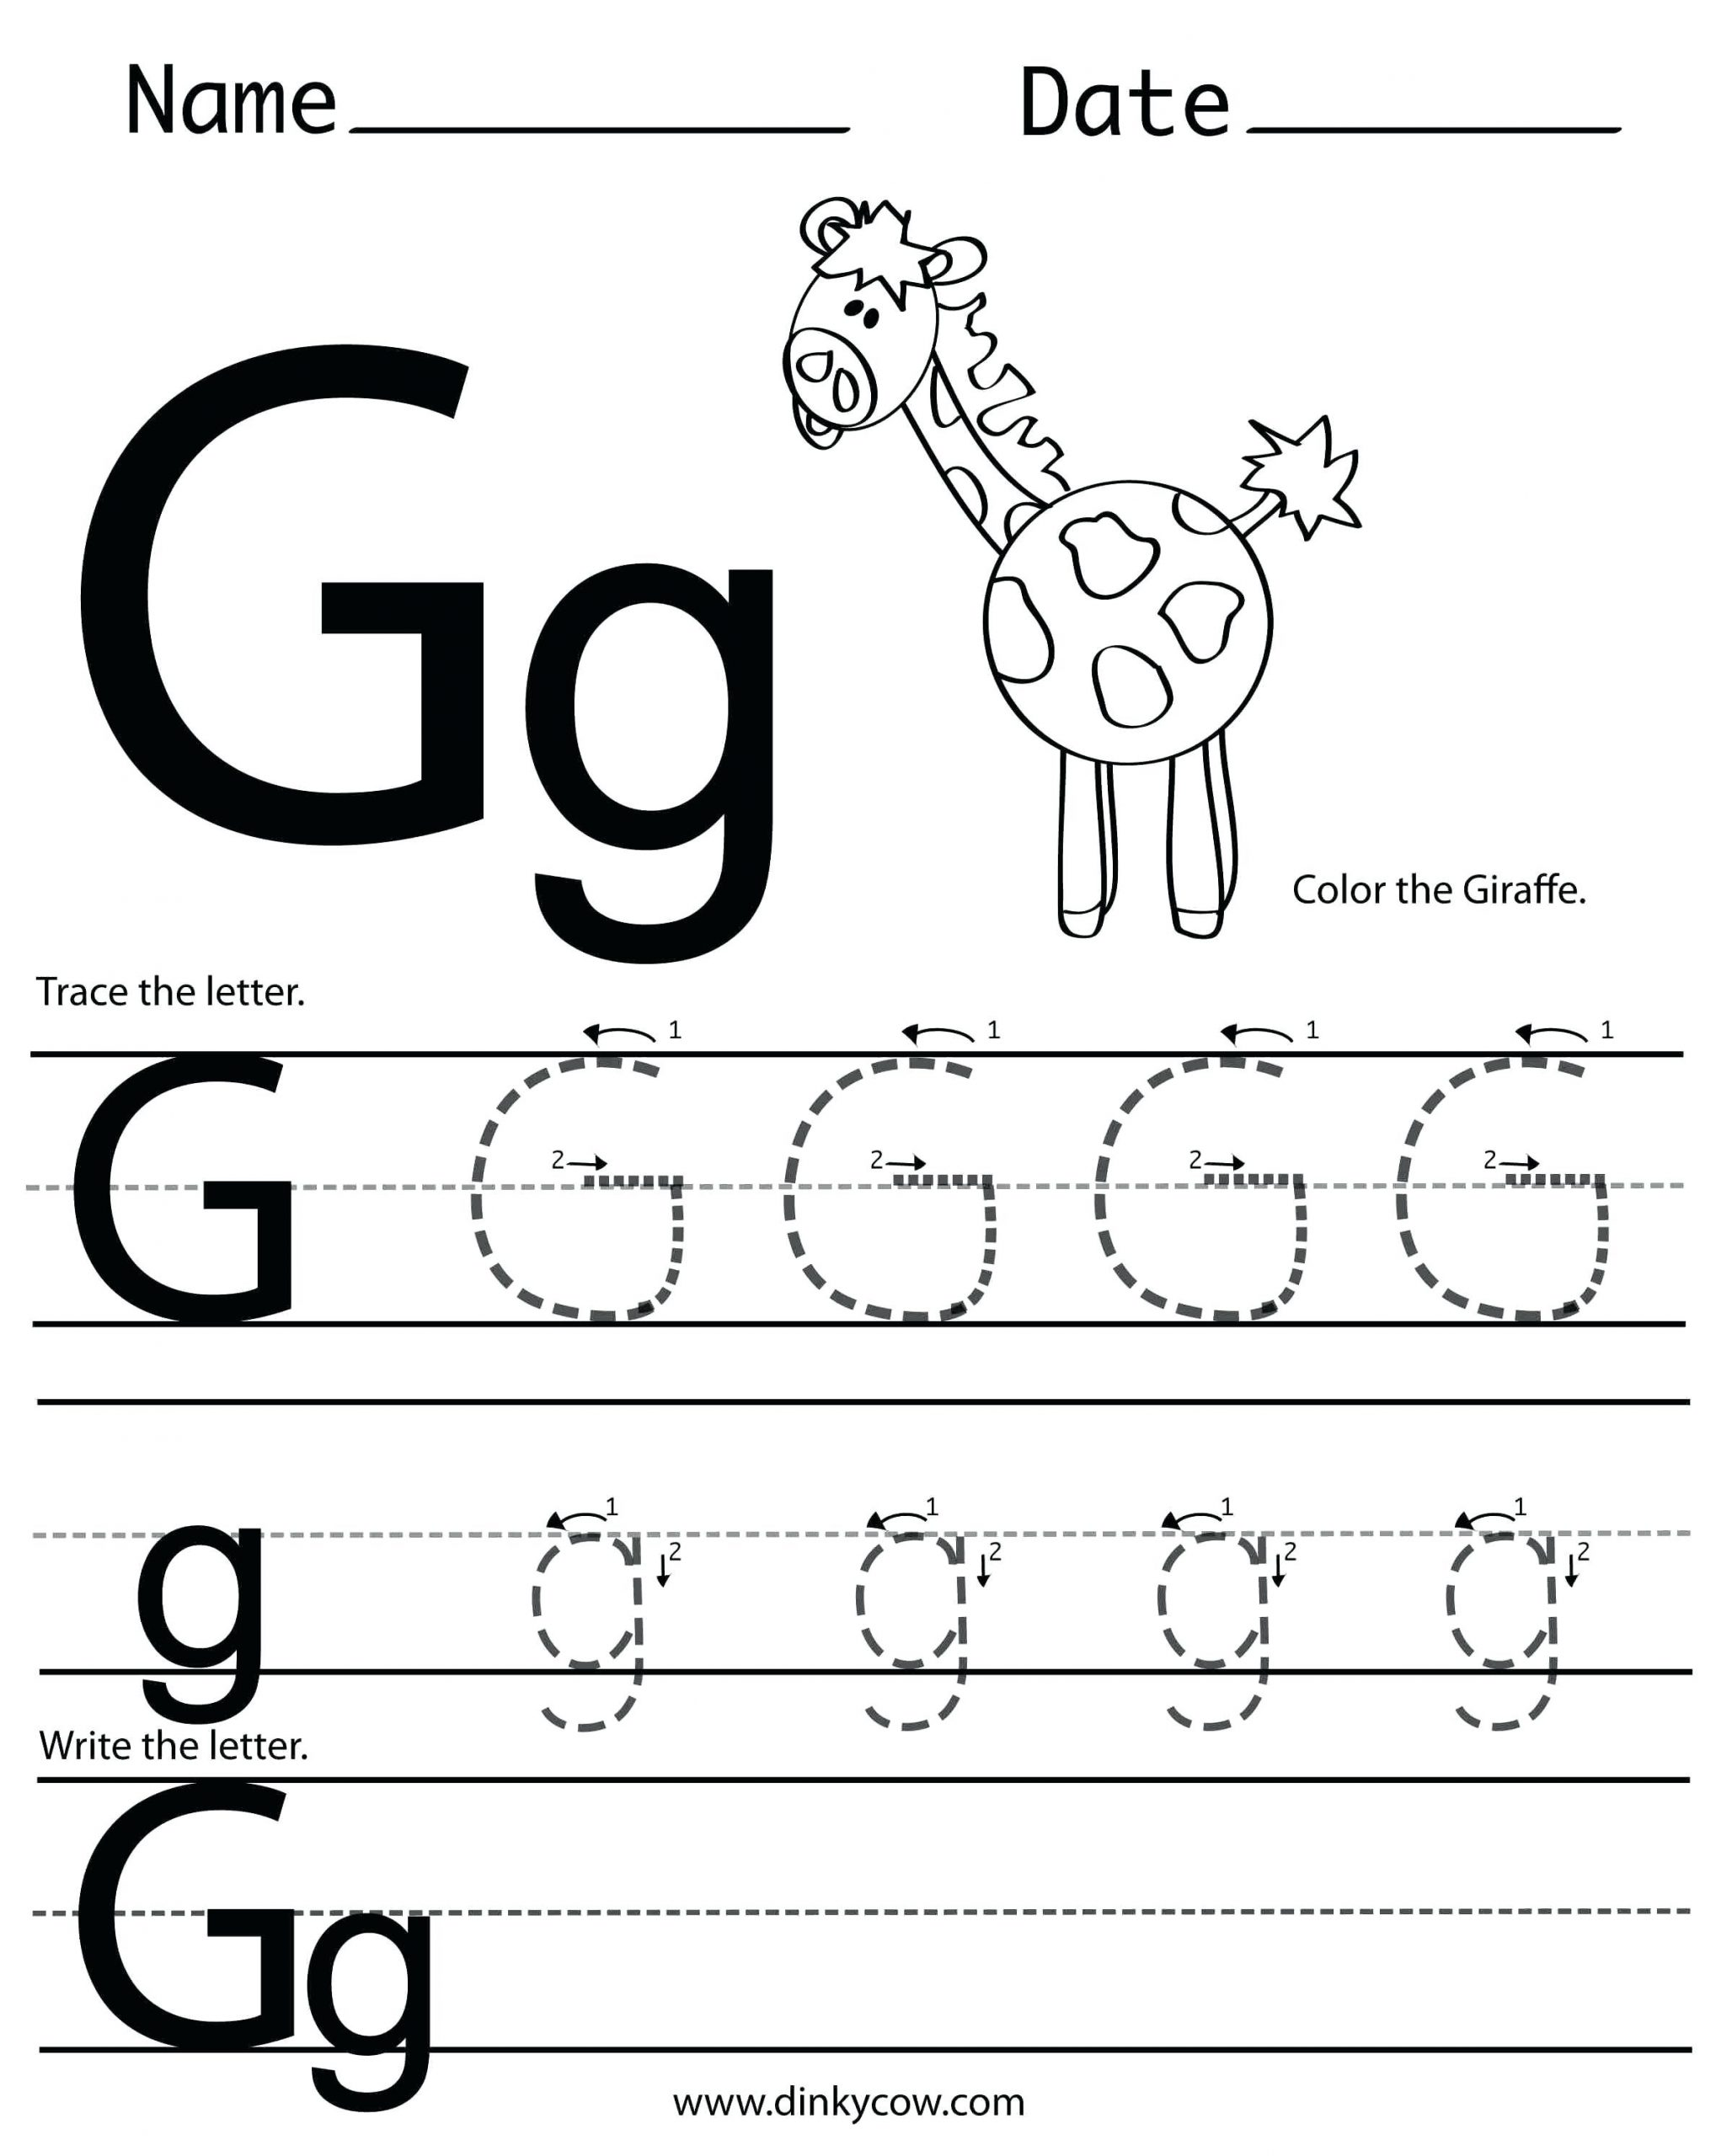 Preschool Letter G Worksheets Letter G Preschool Preschool Letter the Week G Craft